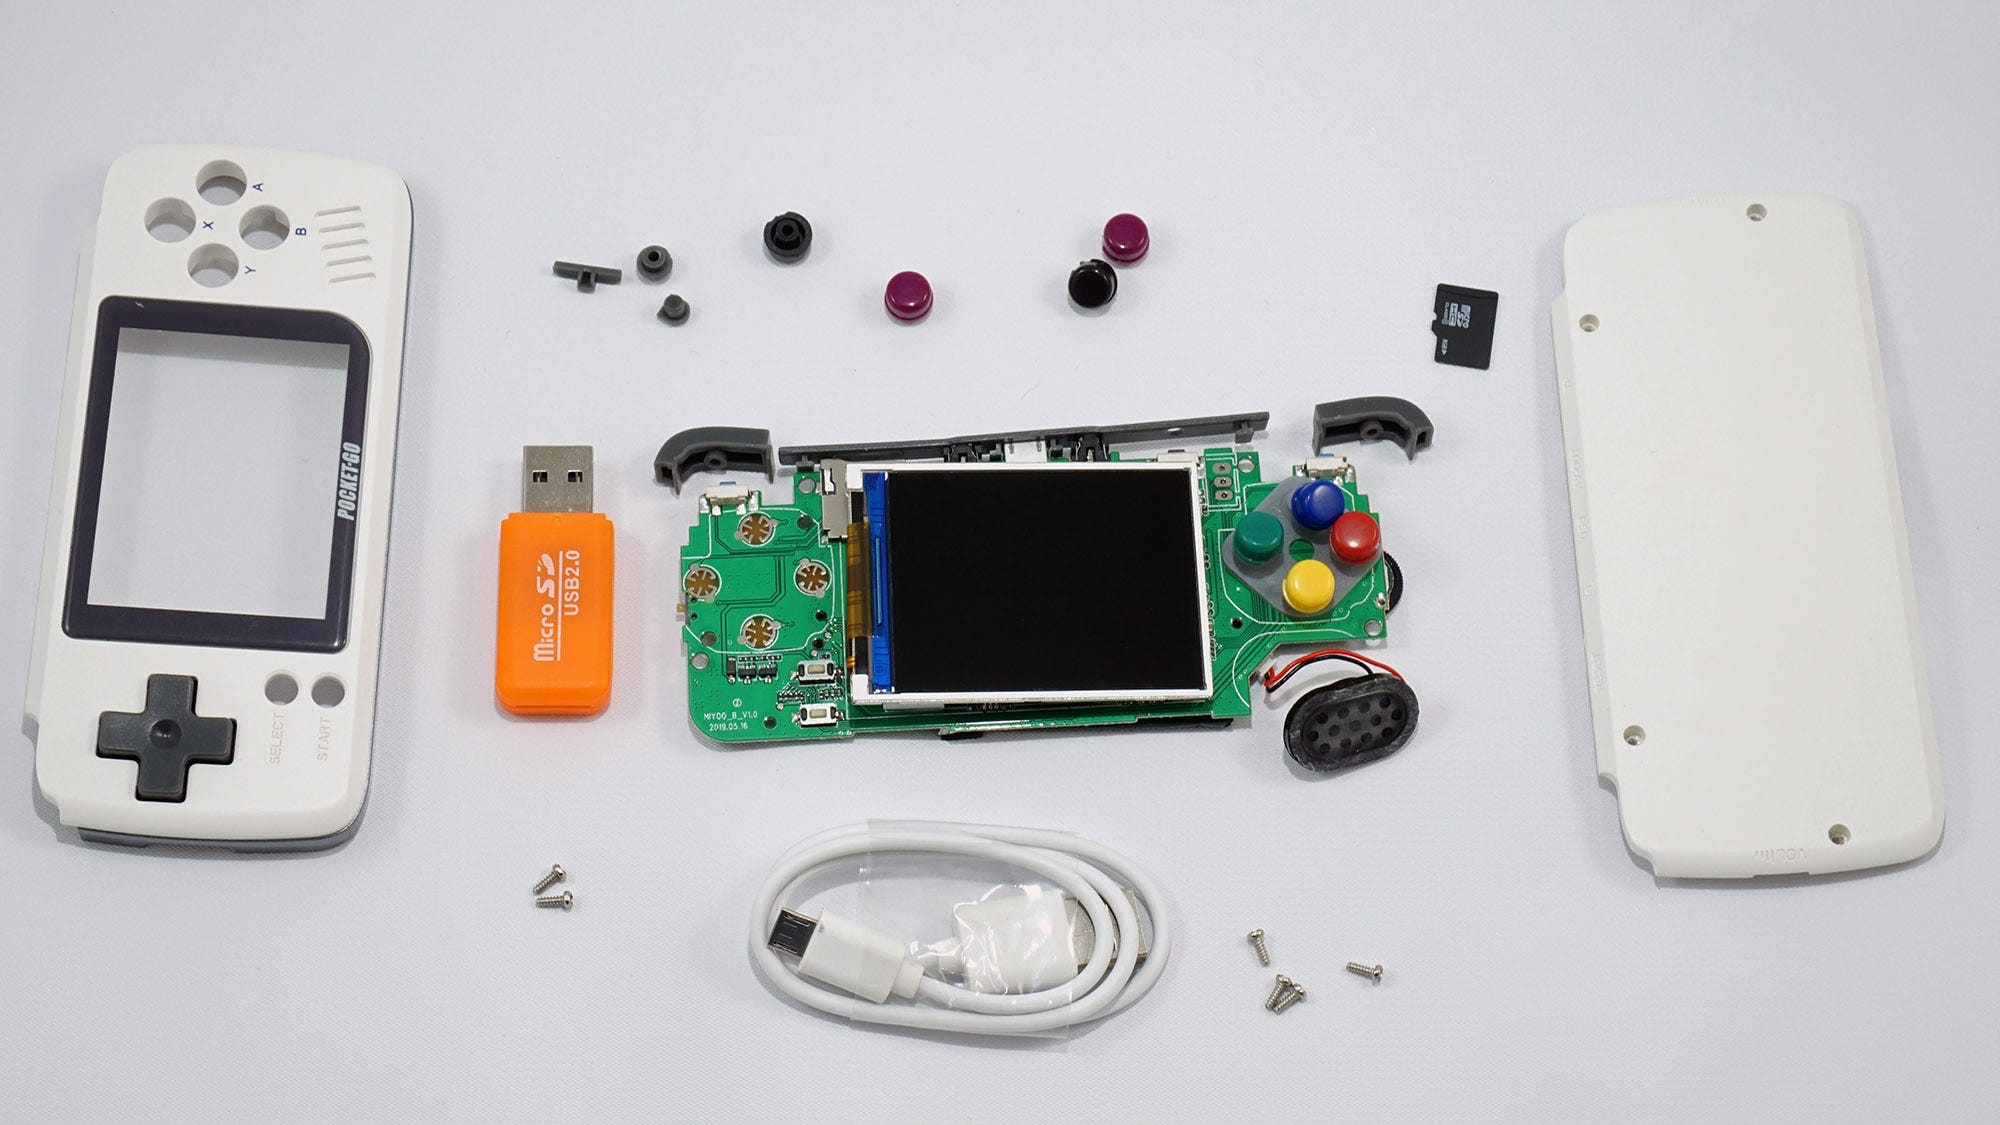 The PocketGo, disassembled with its accessories.